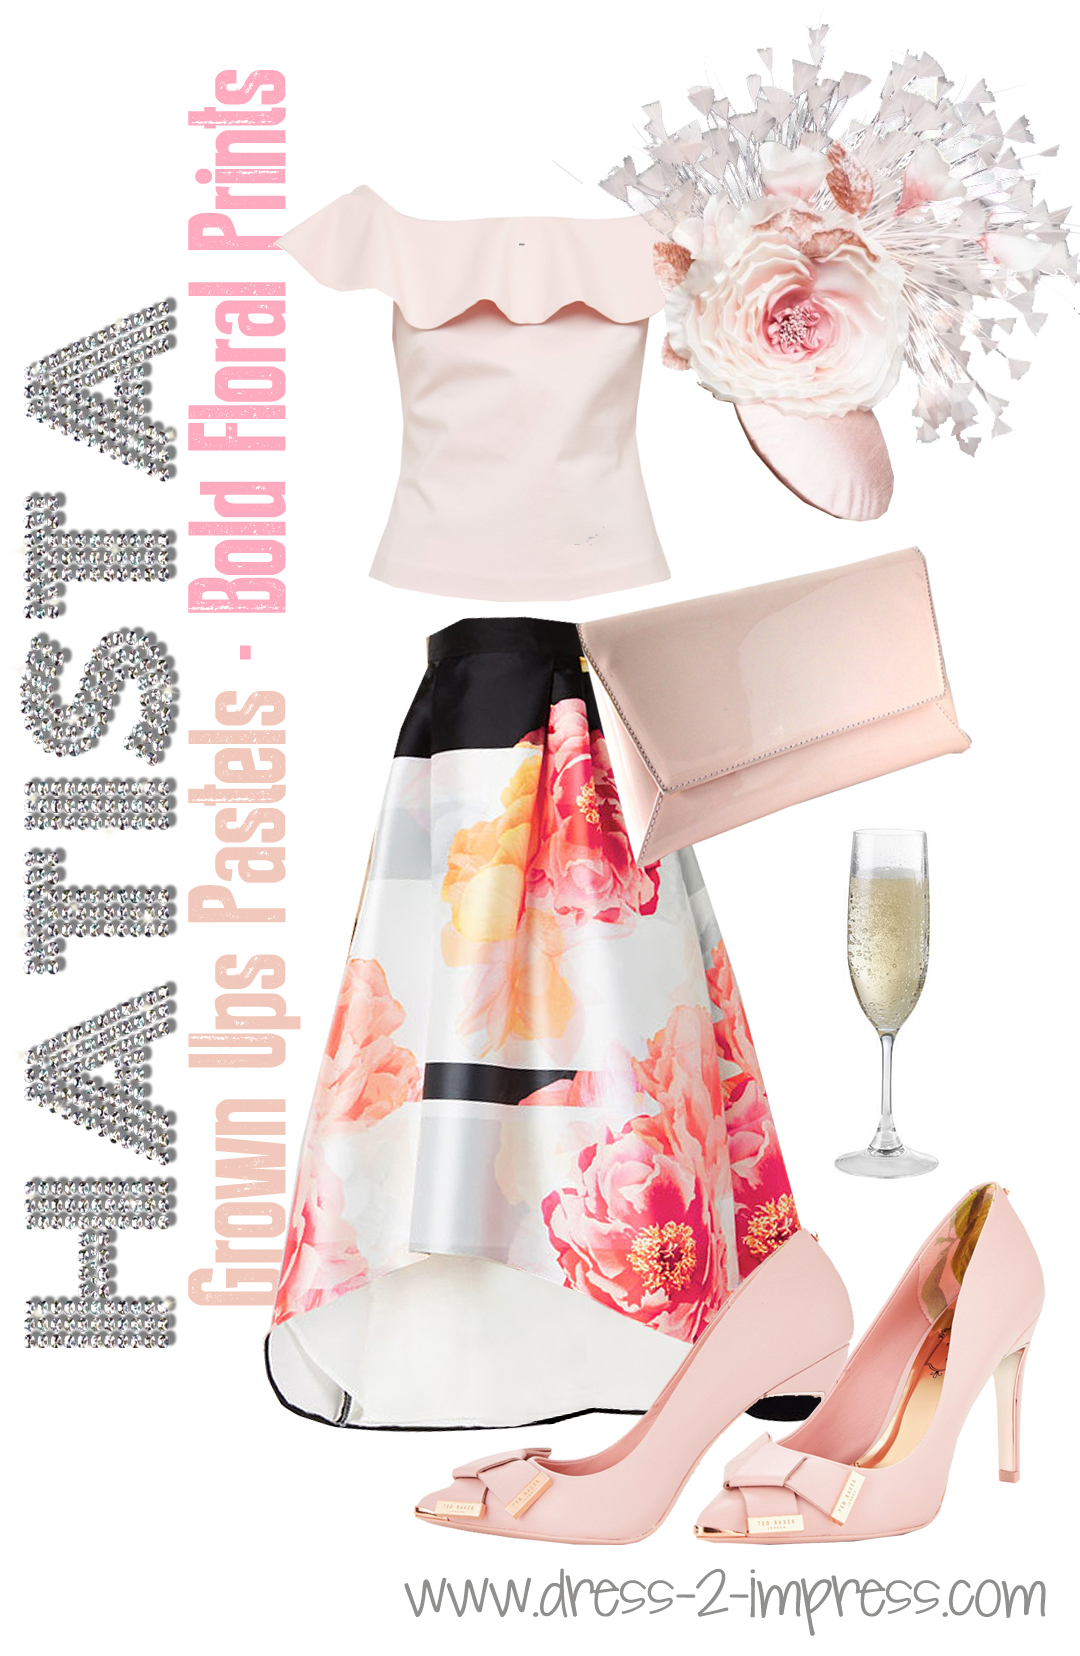 What to wear to the Kentucky Derby. Kentucky Derby Outfits. Outfit inspiration ideas on what to wear to the Races. What to wear for Kentucky Oaks Day. Kentucky Derby Hats. How to Dress for the Kentucky Derby. #fashionista #kentuckyderby #royalascot Outfit Ideas for Day at the Races